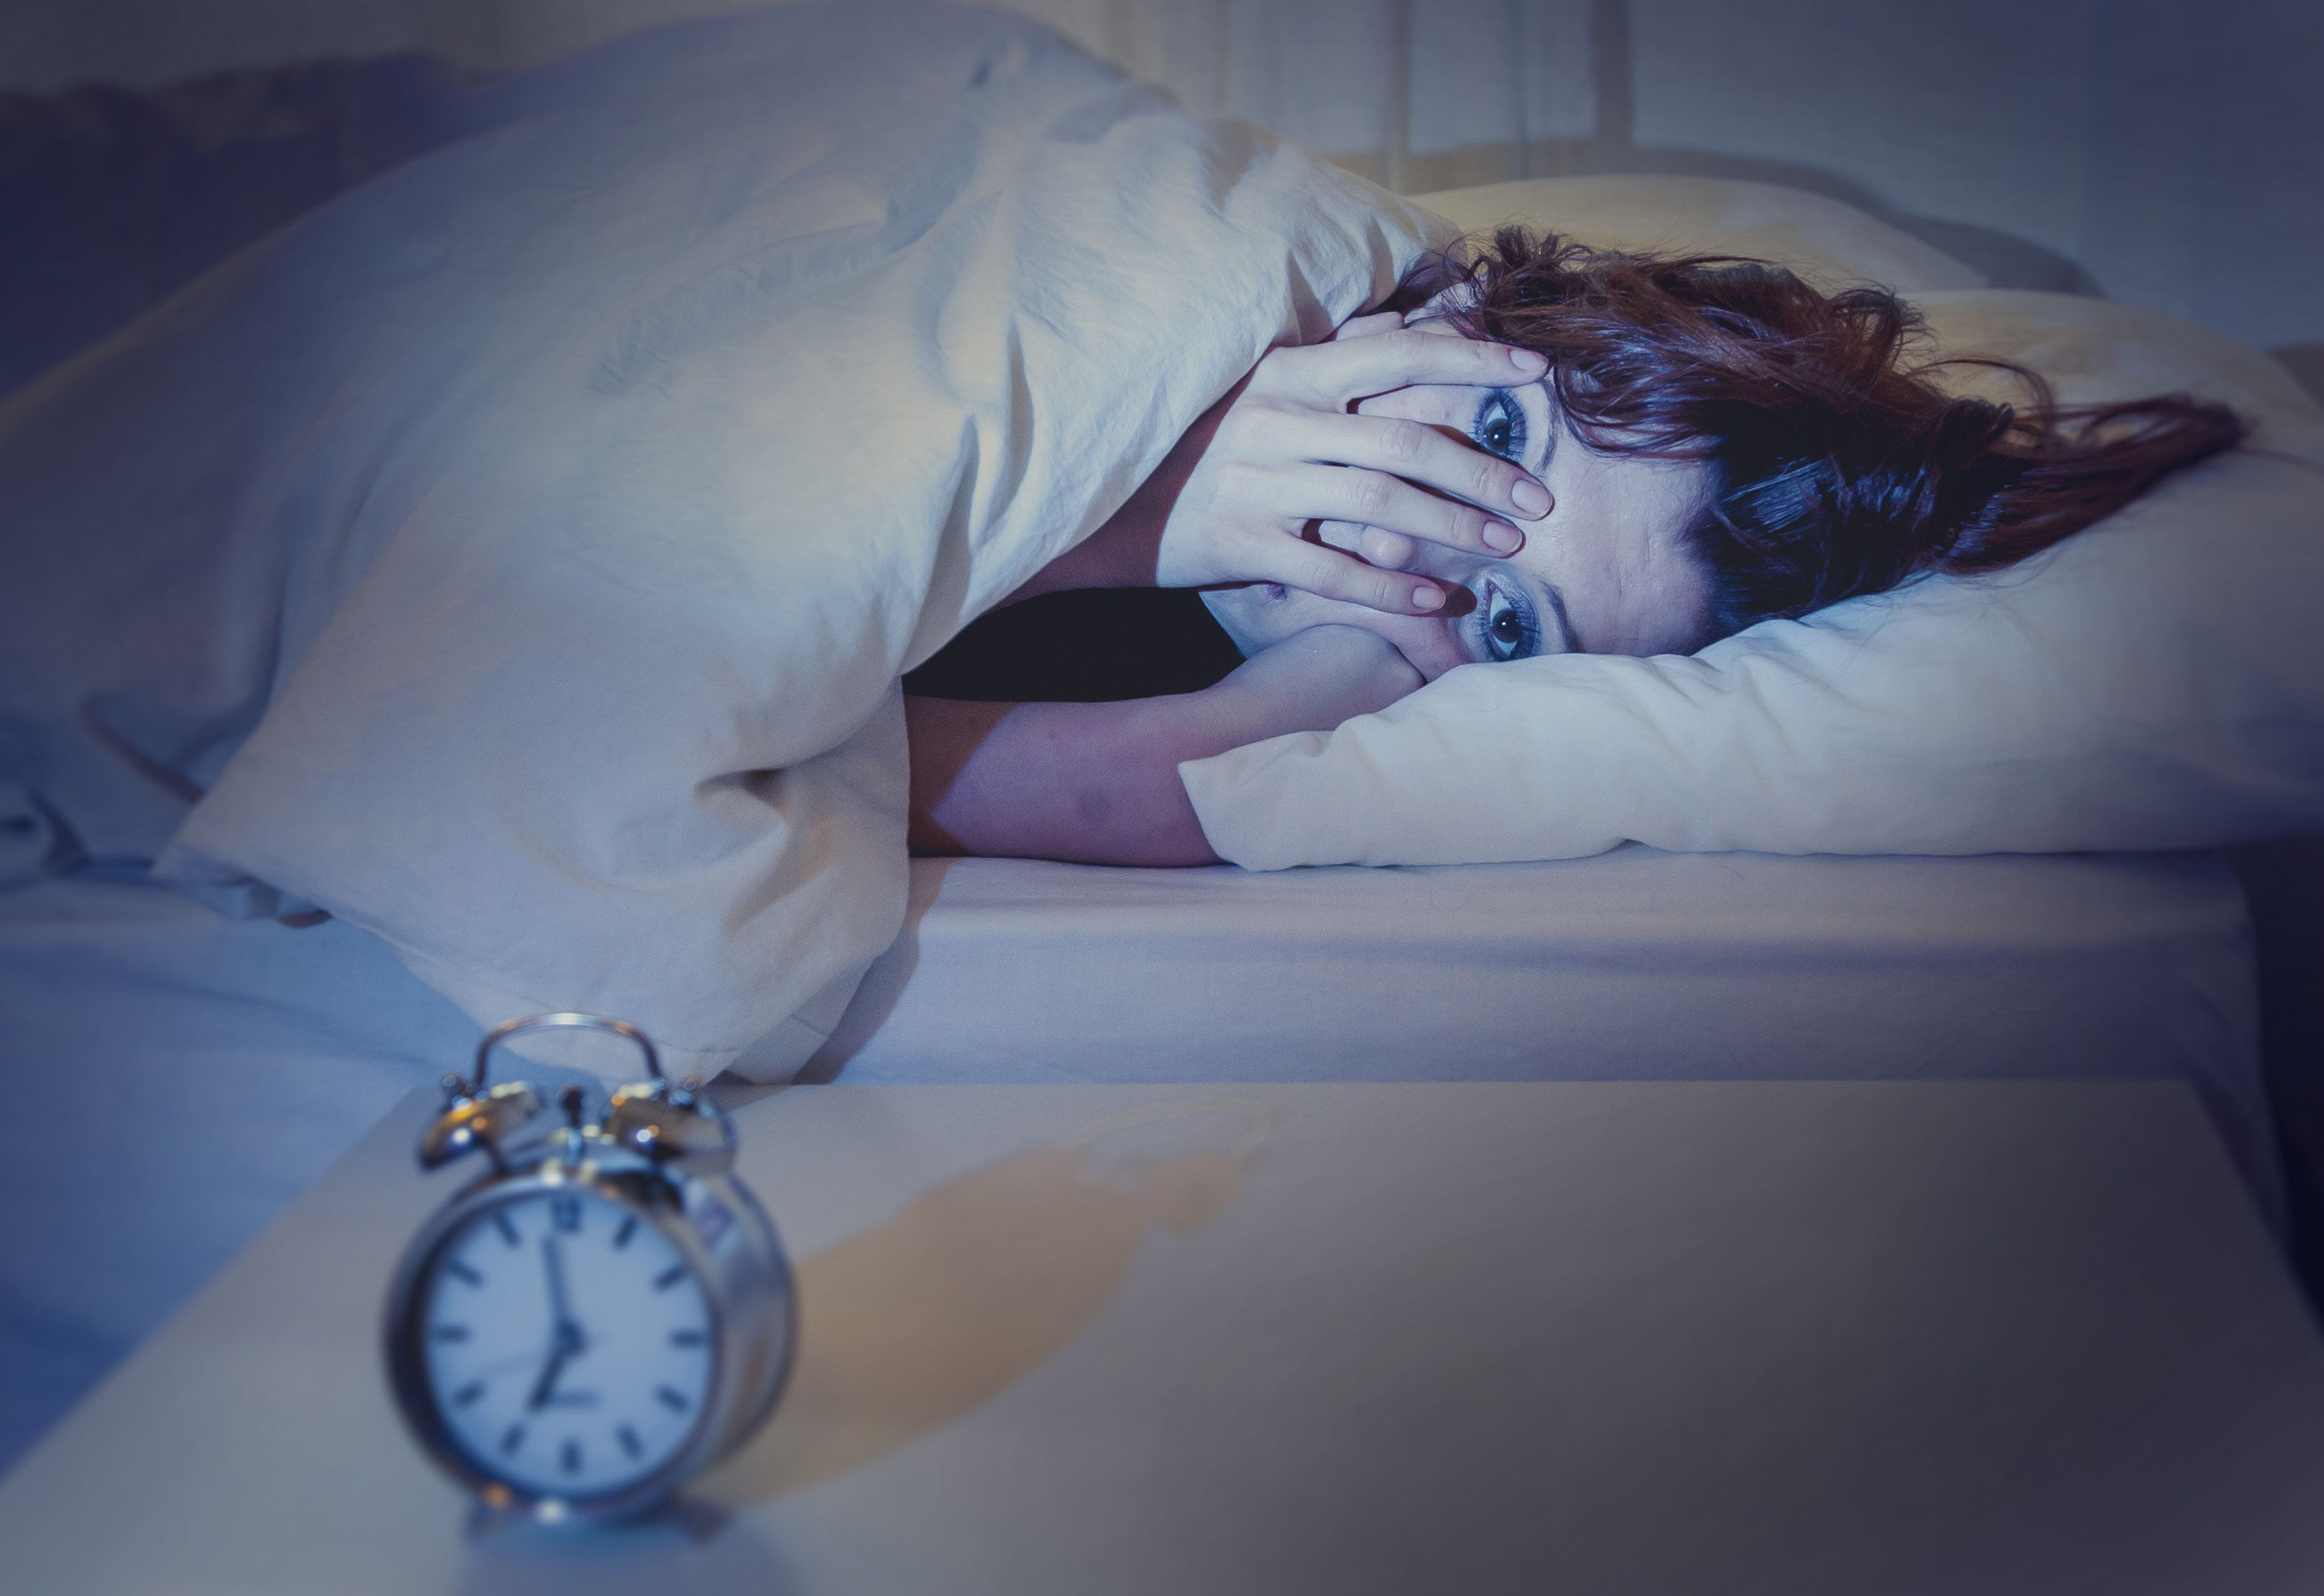 woman with red hair in her bed with insomnia and can't sleep waiting for her alarm clock to go off on a white background